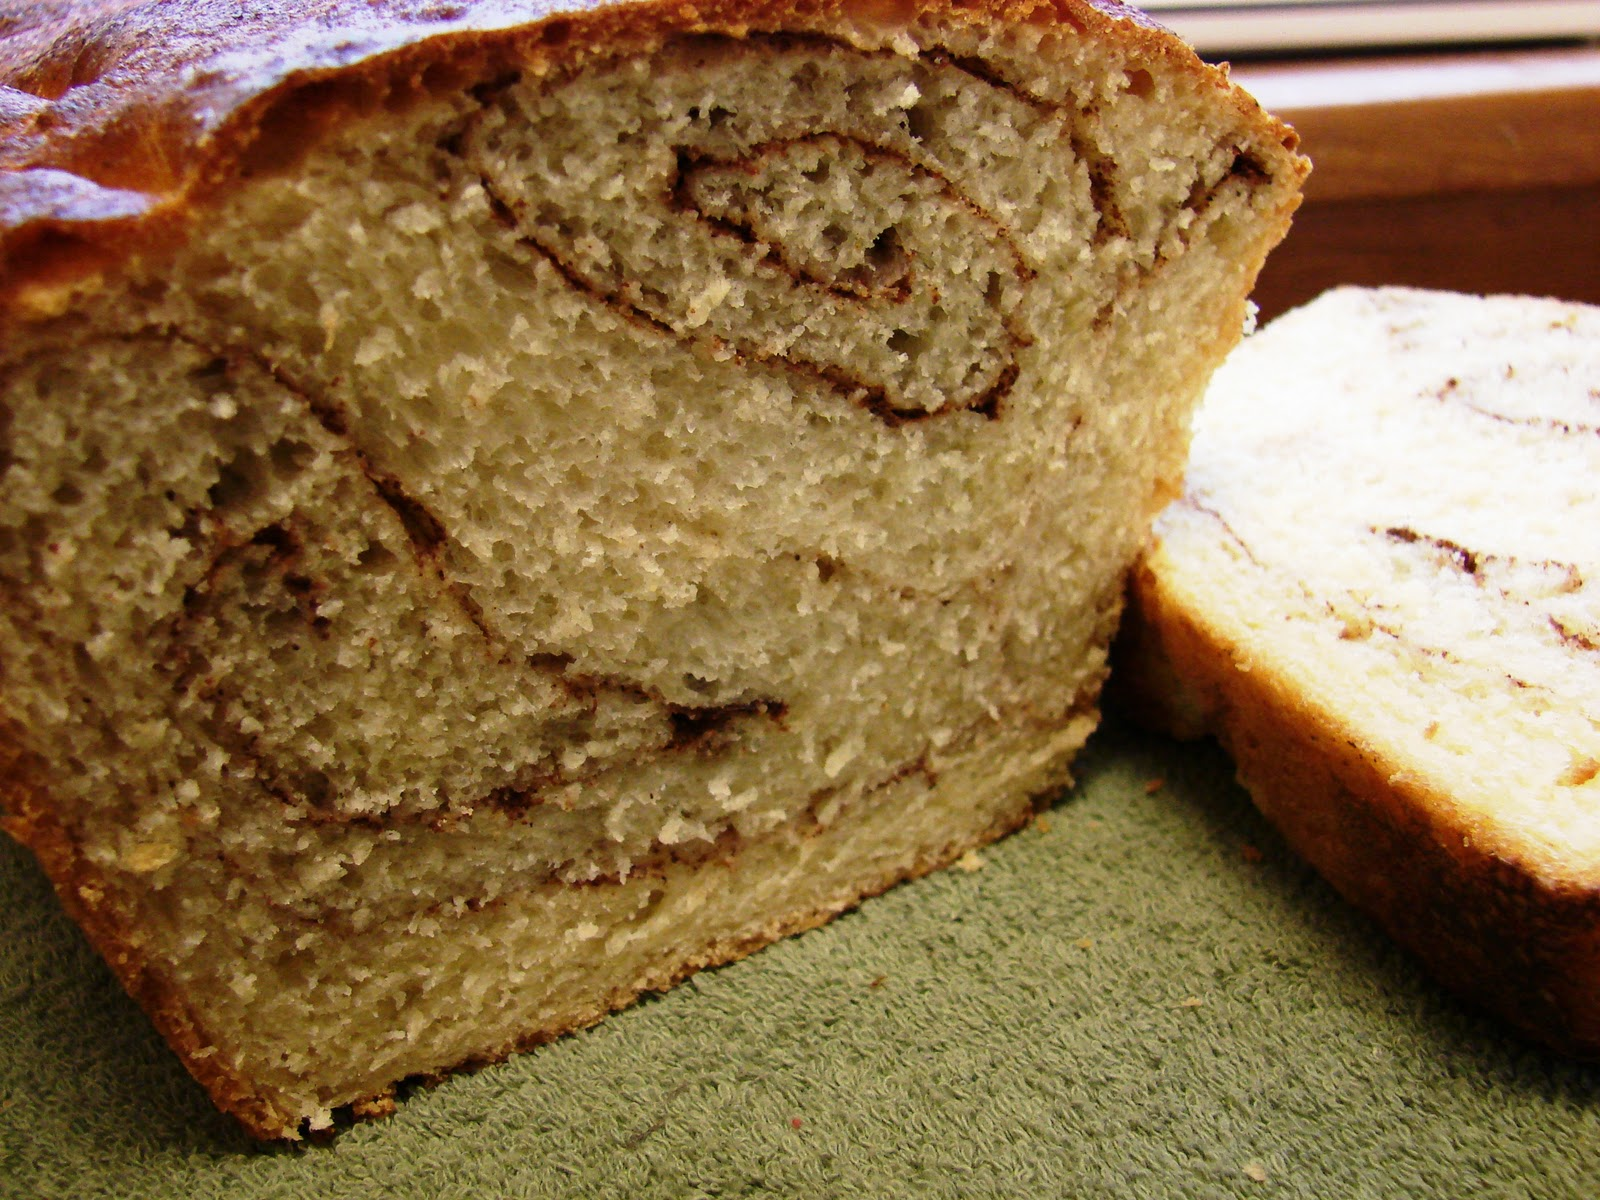 Cinnamon Swirl Bread Source: Adapted from Pioneer Woman